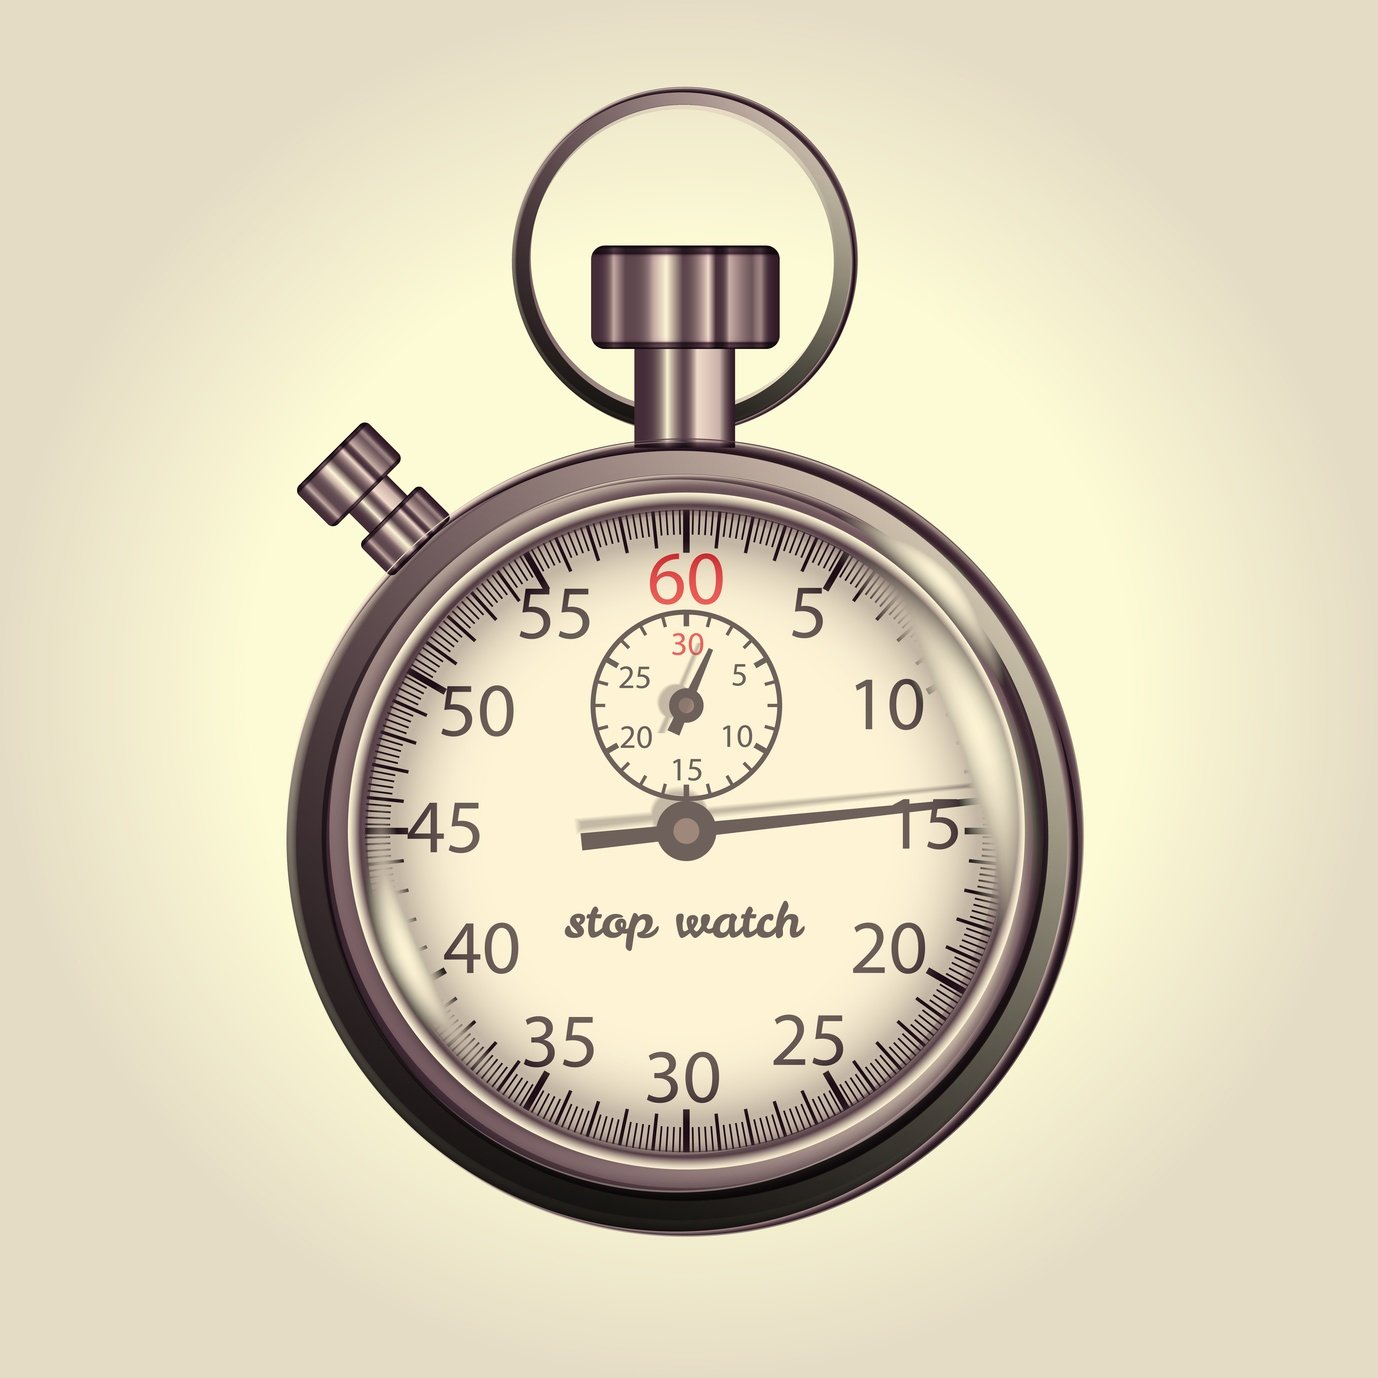 The clock is ticking, but is your lead nurturing moving?